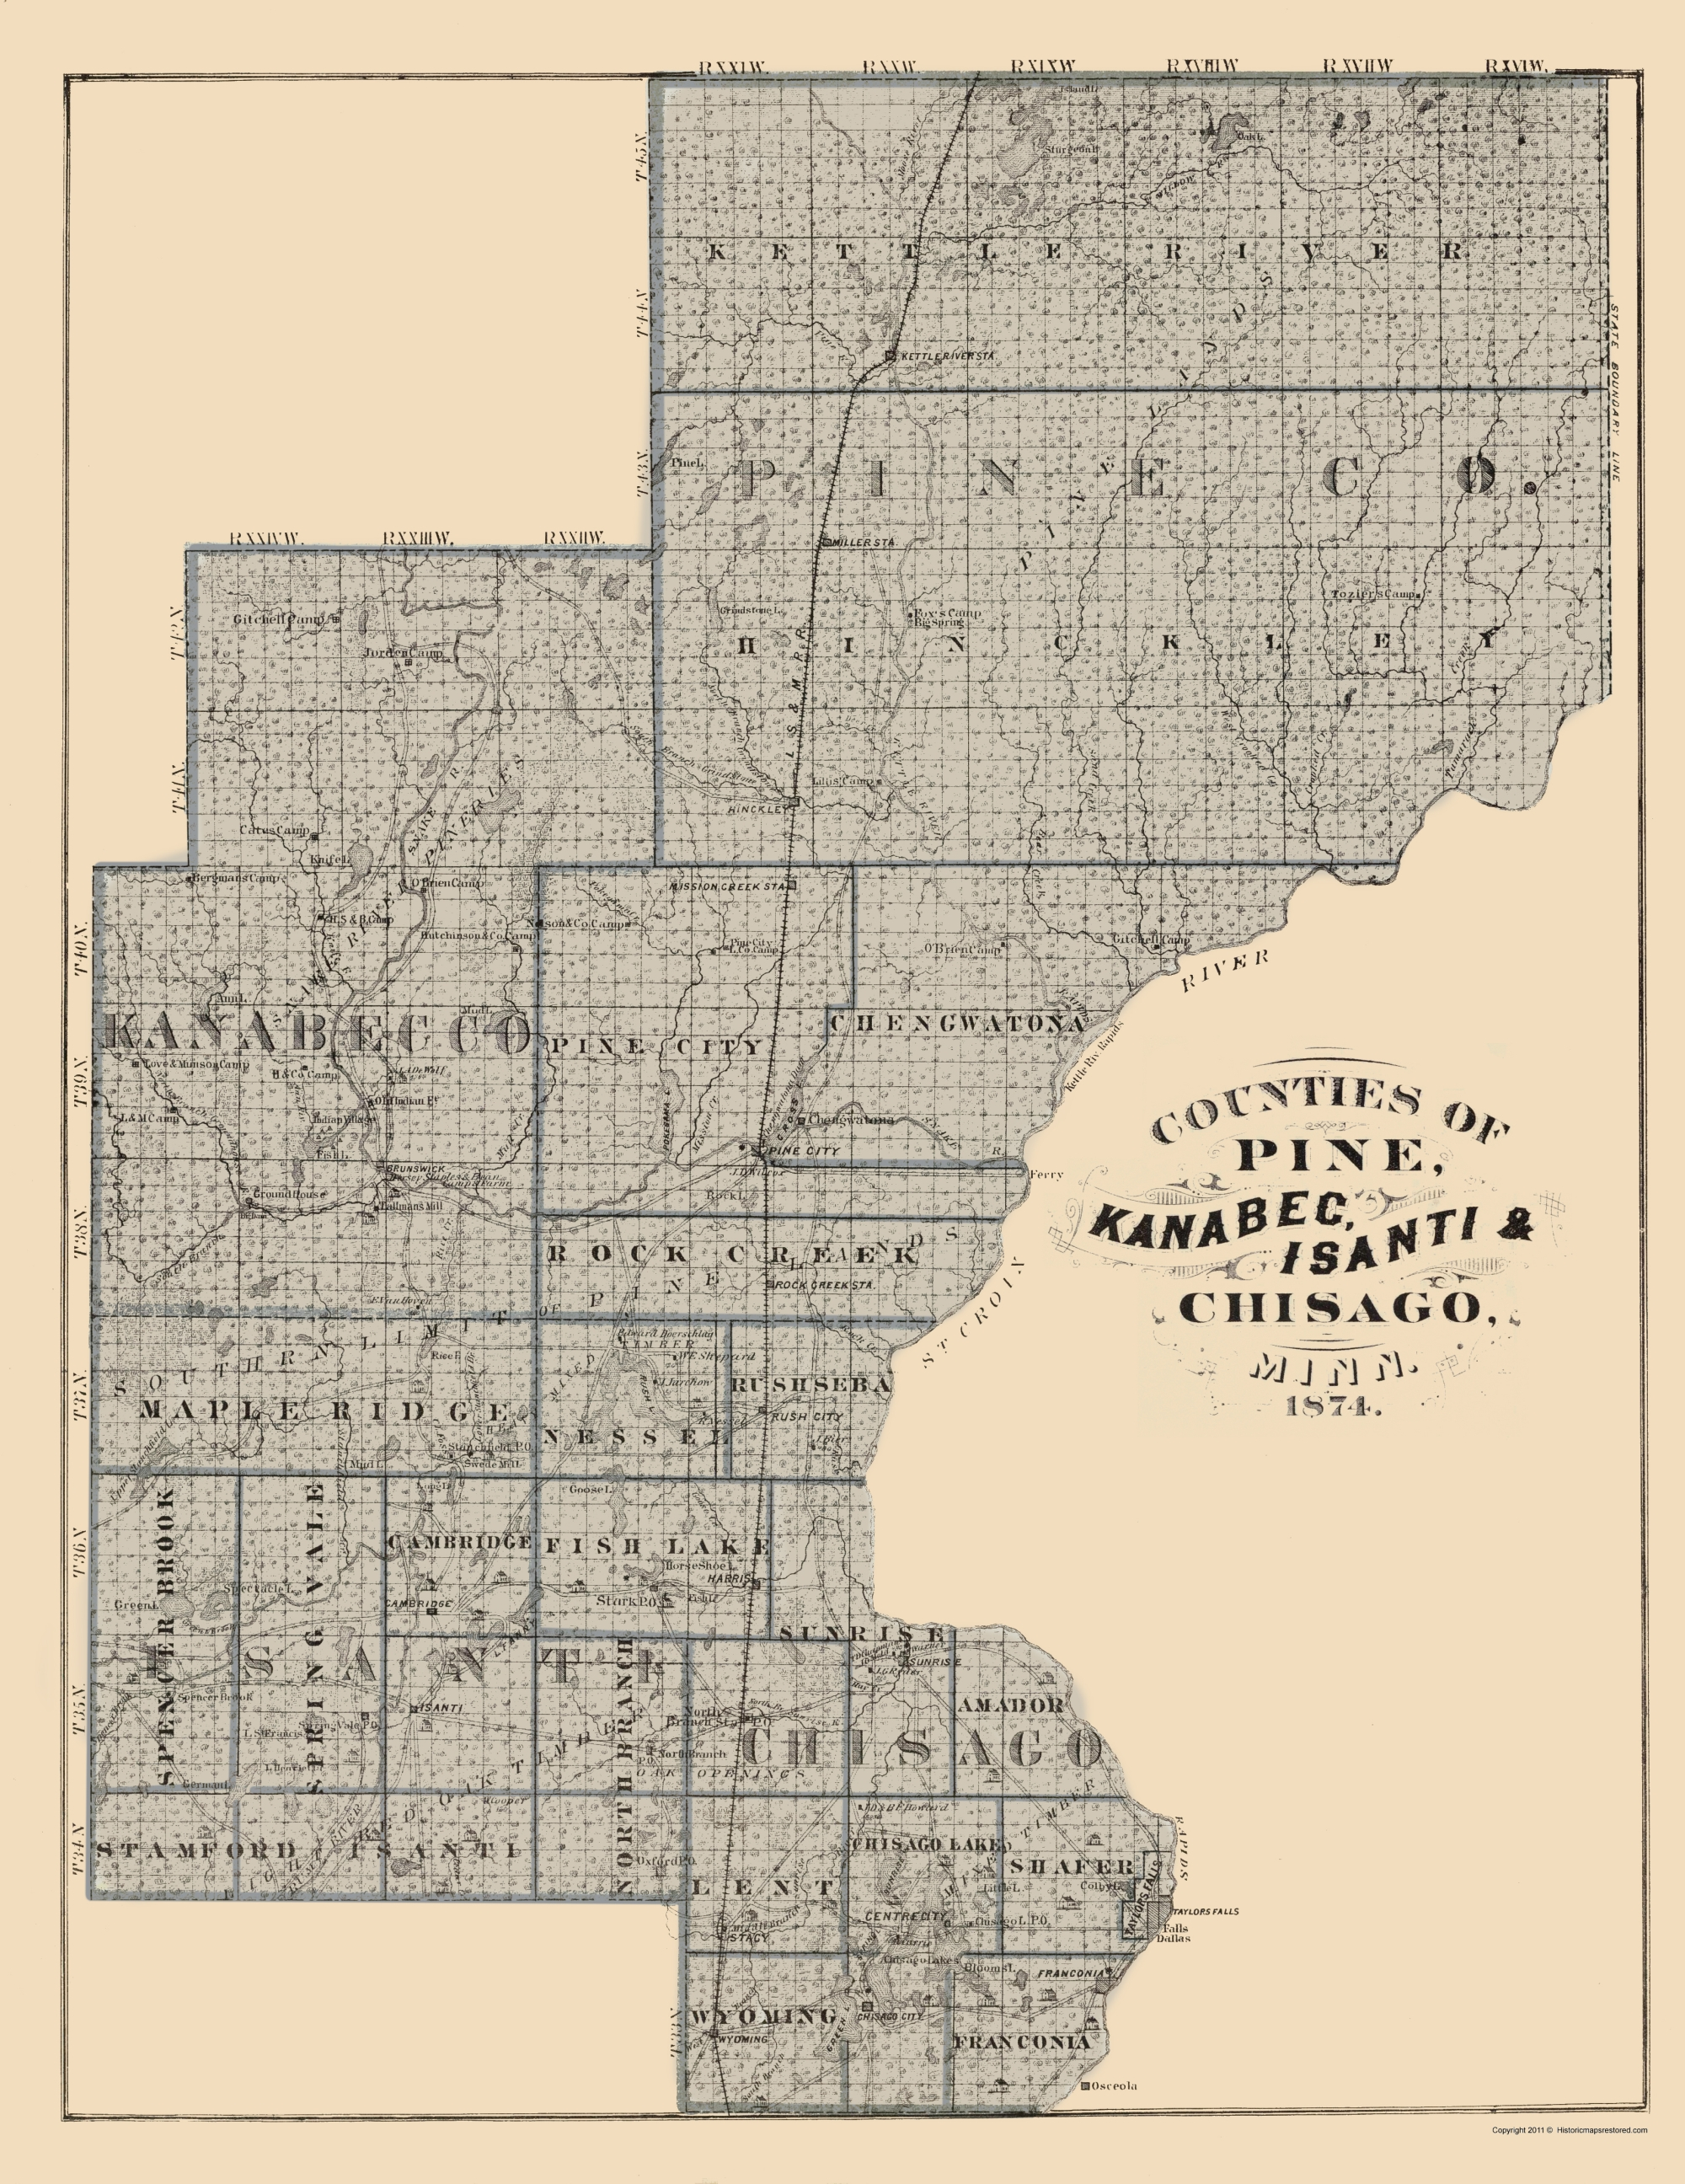 Old County Map - Kanabec, Isanti, Chisago Minnesota 1874 on